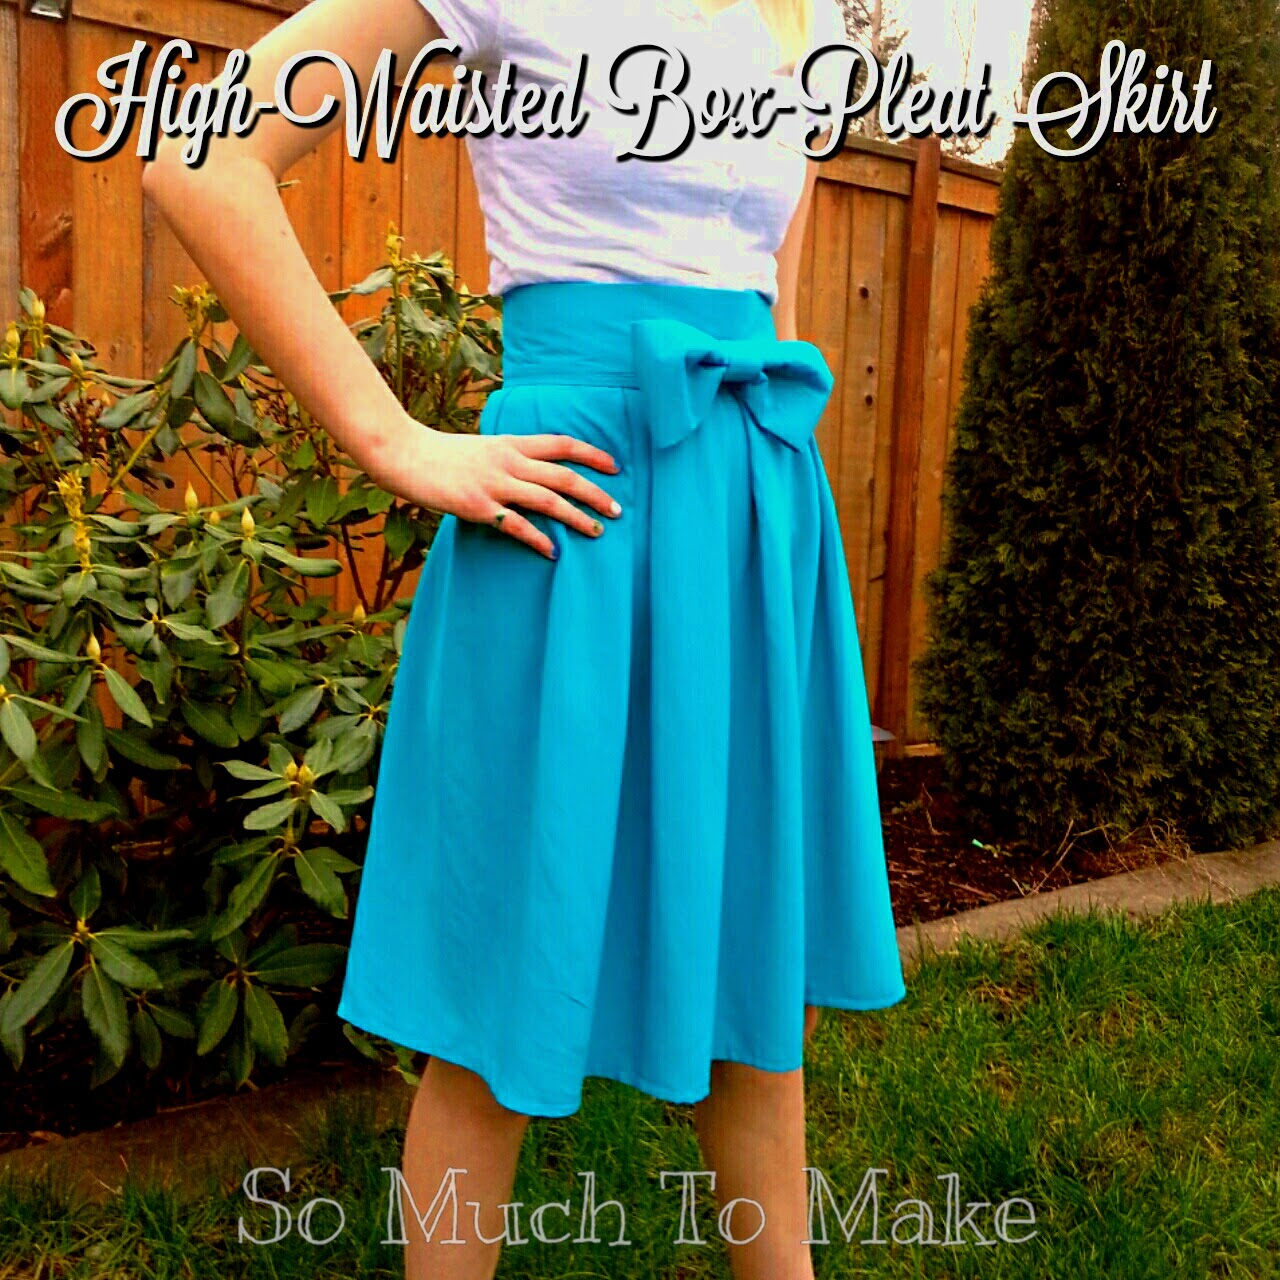 I Had The Opportunity To Make This Lovely Skirt Recently For A Good Friend Used An Excellent Tutorial Found From Oak Tree